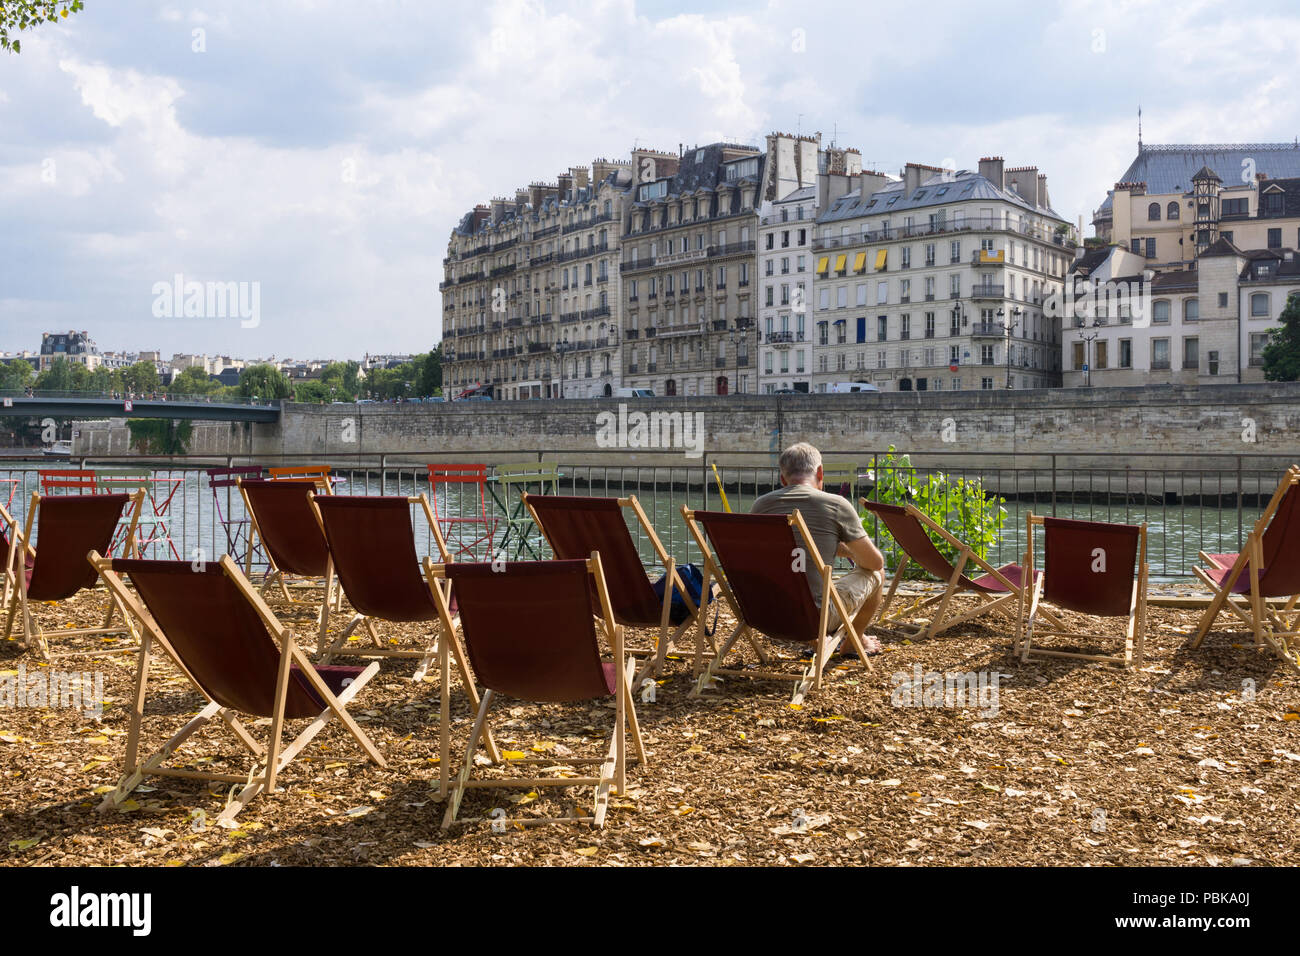 Man relaxing on the Seine River right bank during the Paris Plages event. - Stock Image